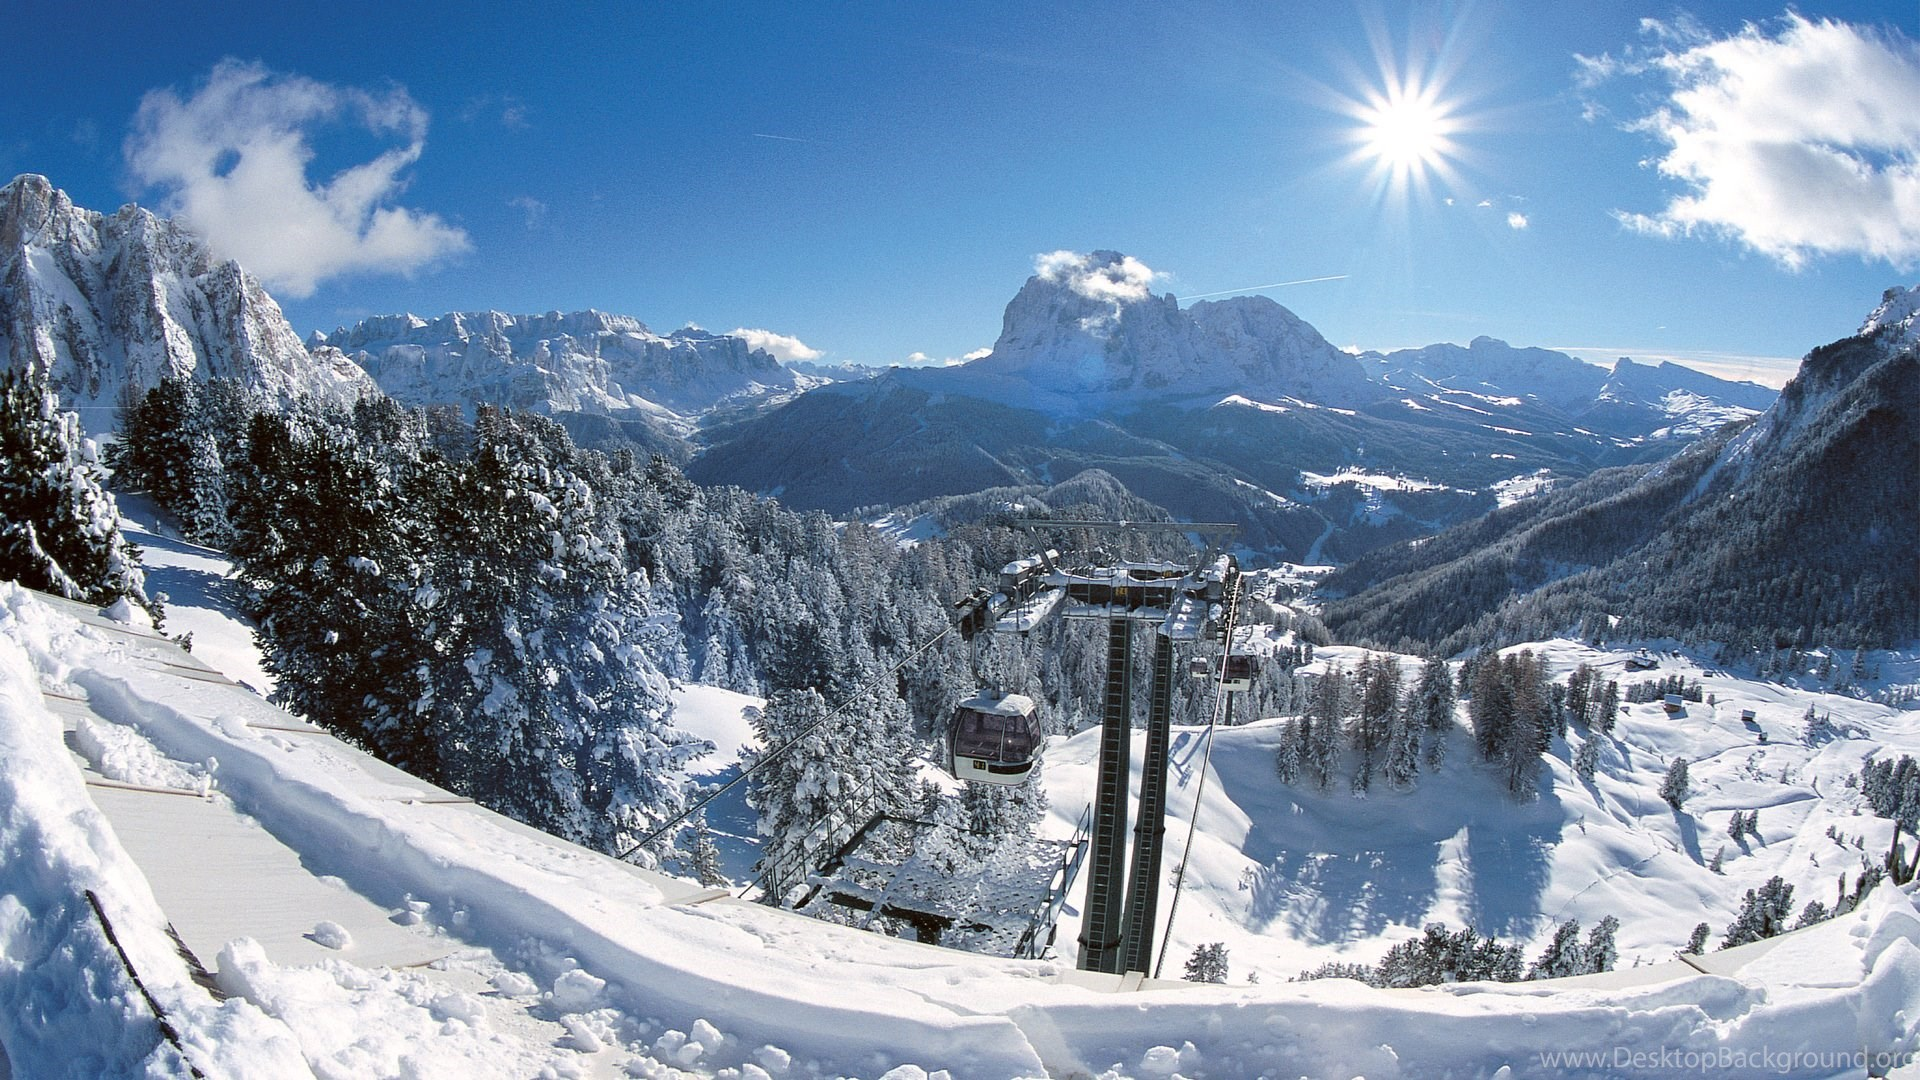 Justpict Com Ski Mountain Wallpapers Hd Desktop Background